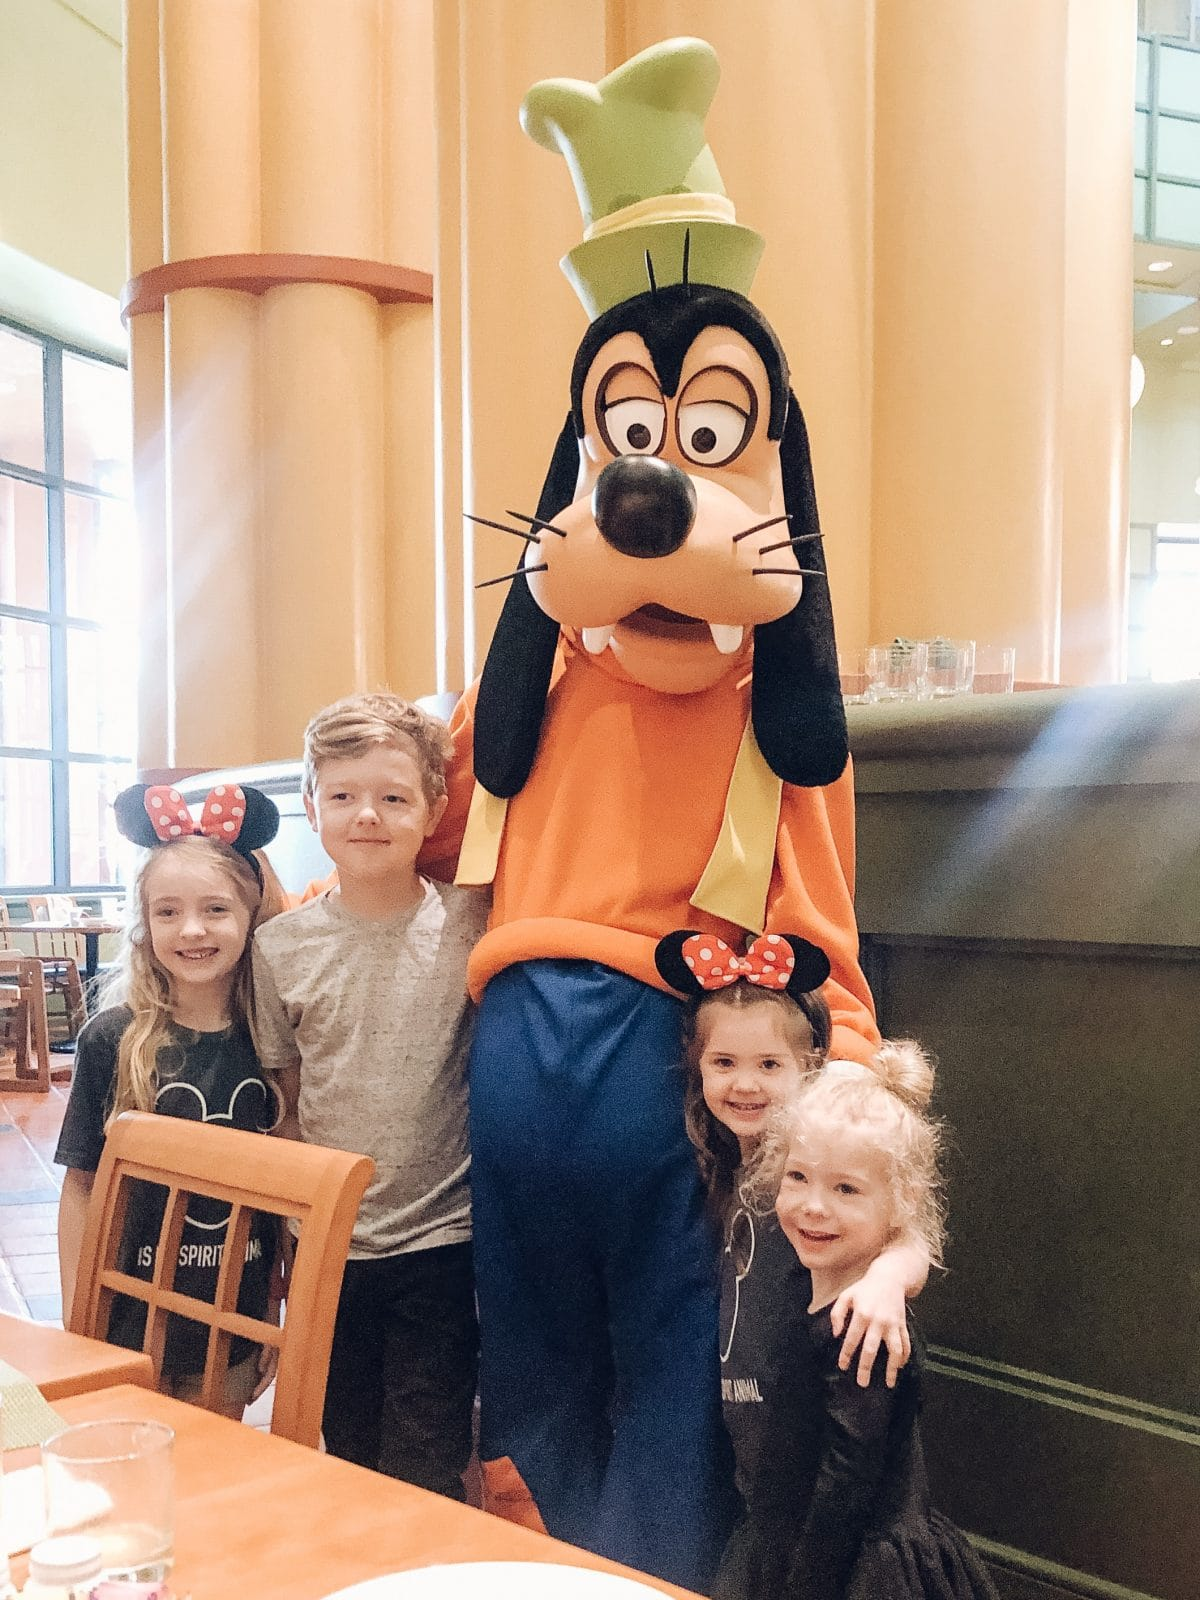 Houston lifestyle blogger Meg O. shares the benefits of staying at the Walt Disney World Swan and Dolphin in Orlando - character breakfast at Garden Grove